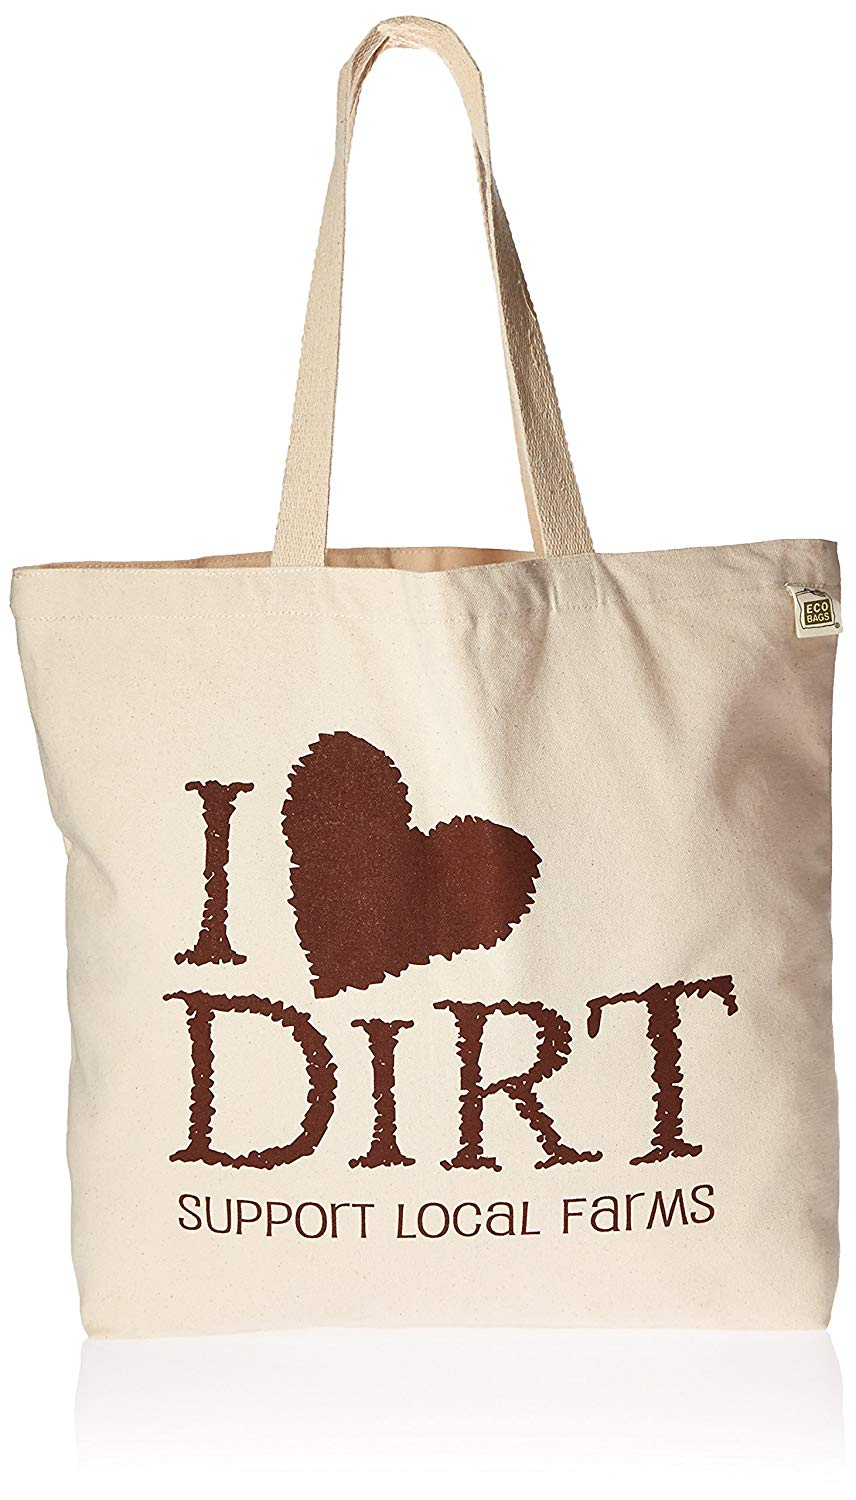 cheap farmers market bags, find farmers market bags deals on line at